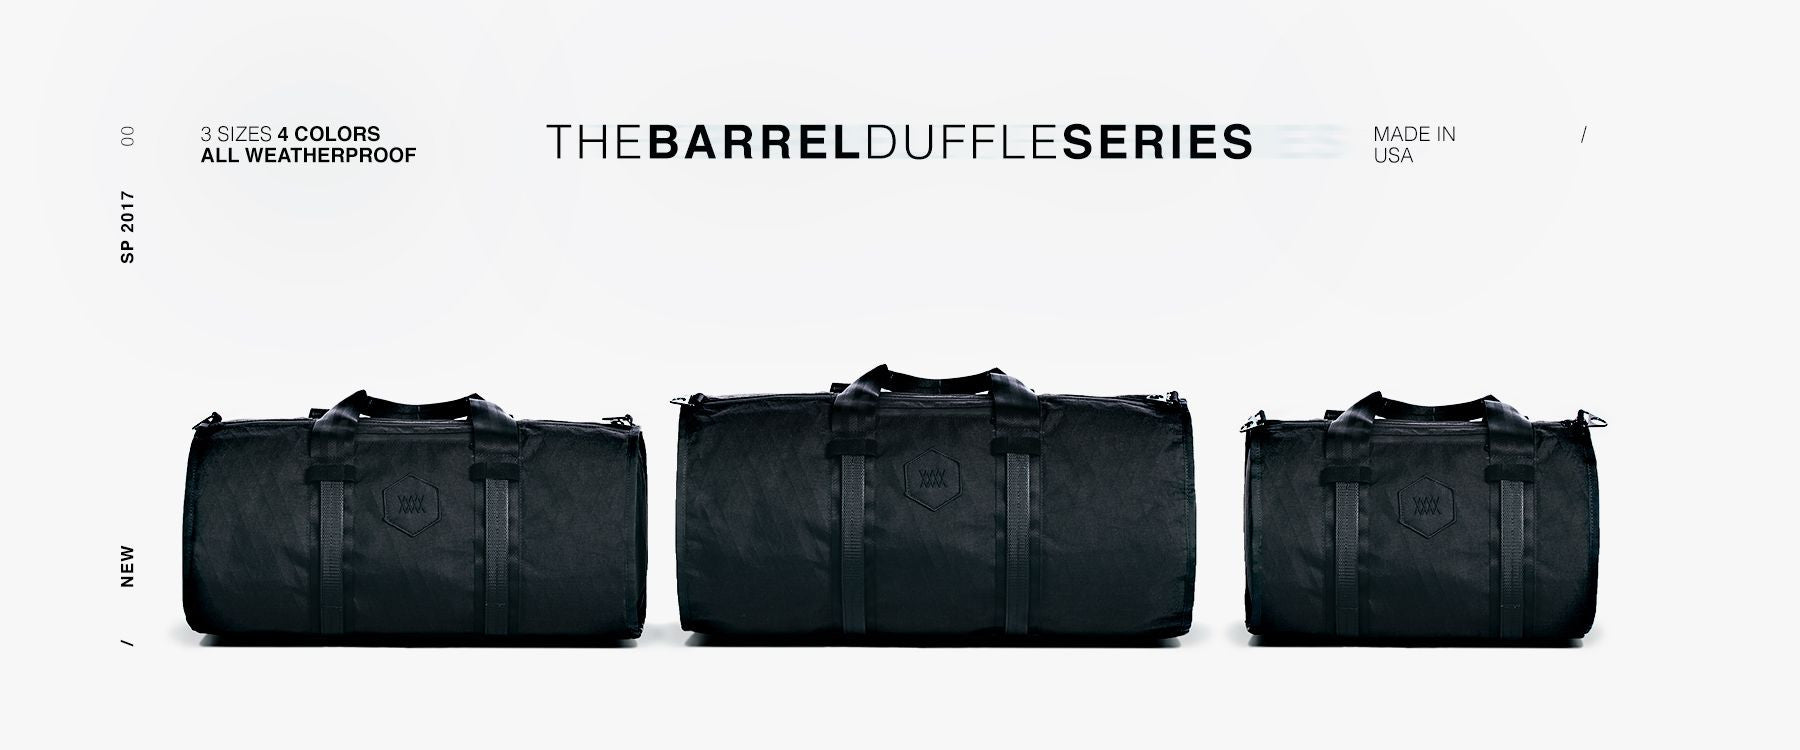 The Mission Workshop Barrel Duffle Series